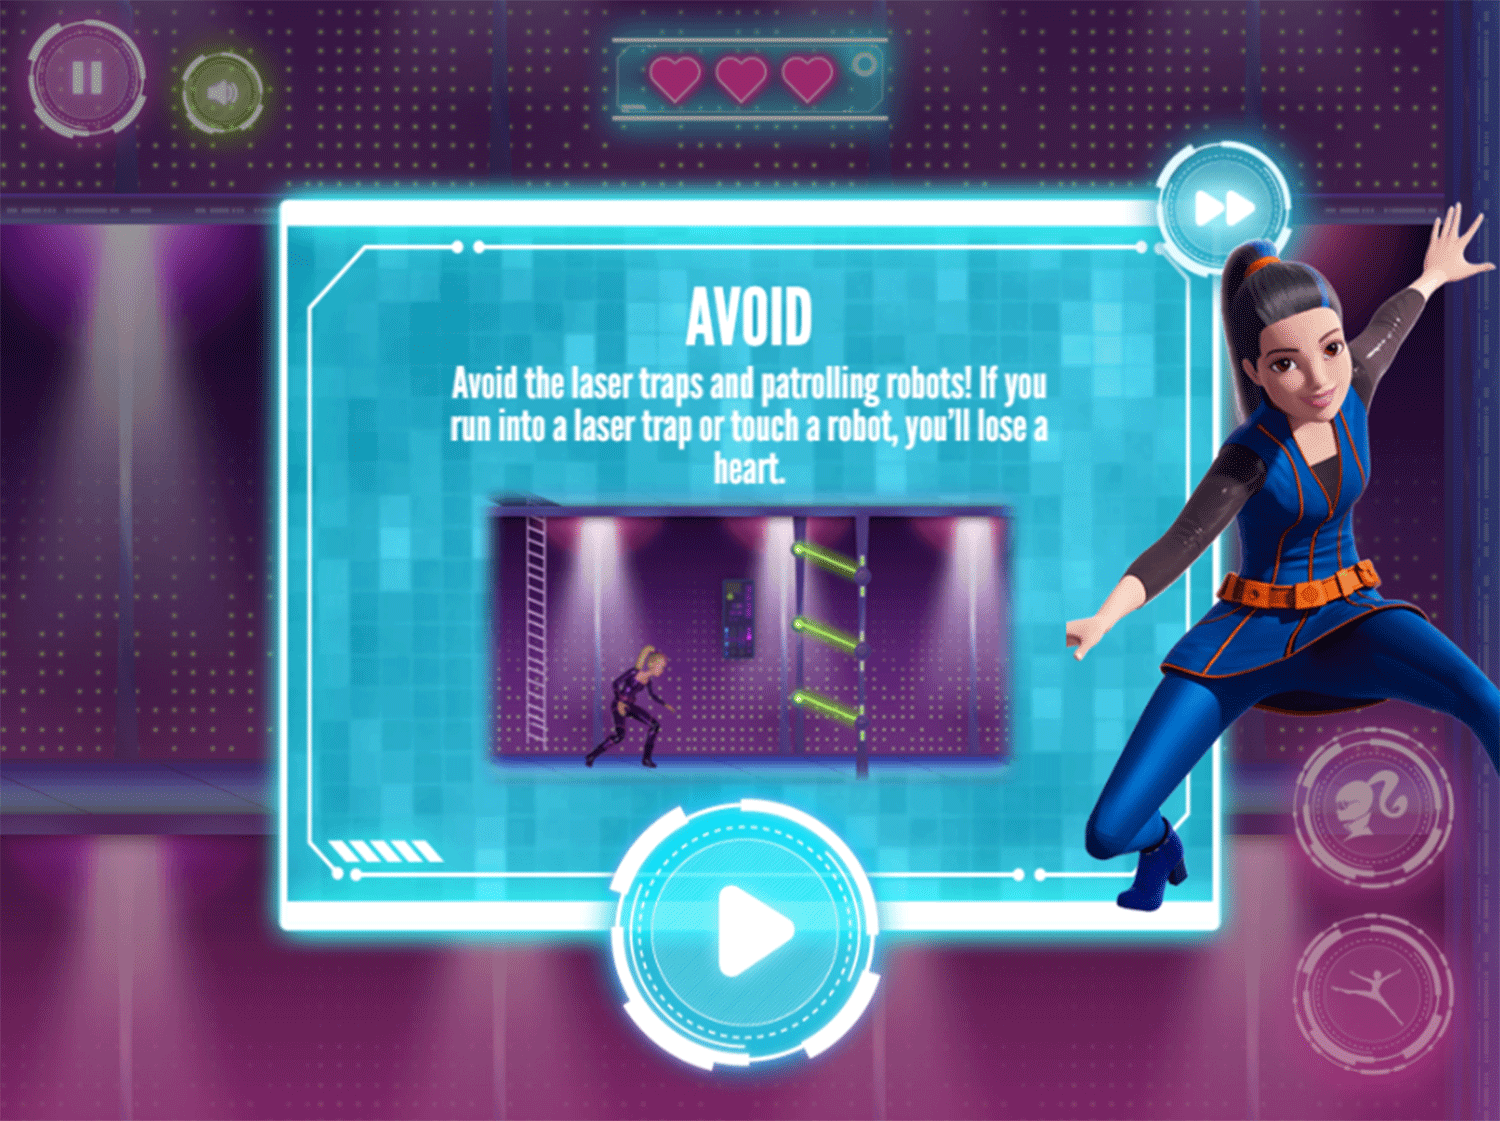 Barbie Spy Squad Academy Game Laser Sneaking Instructions Screenshot.